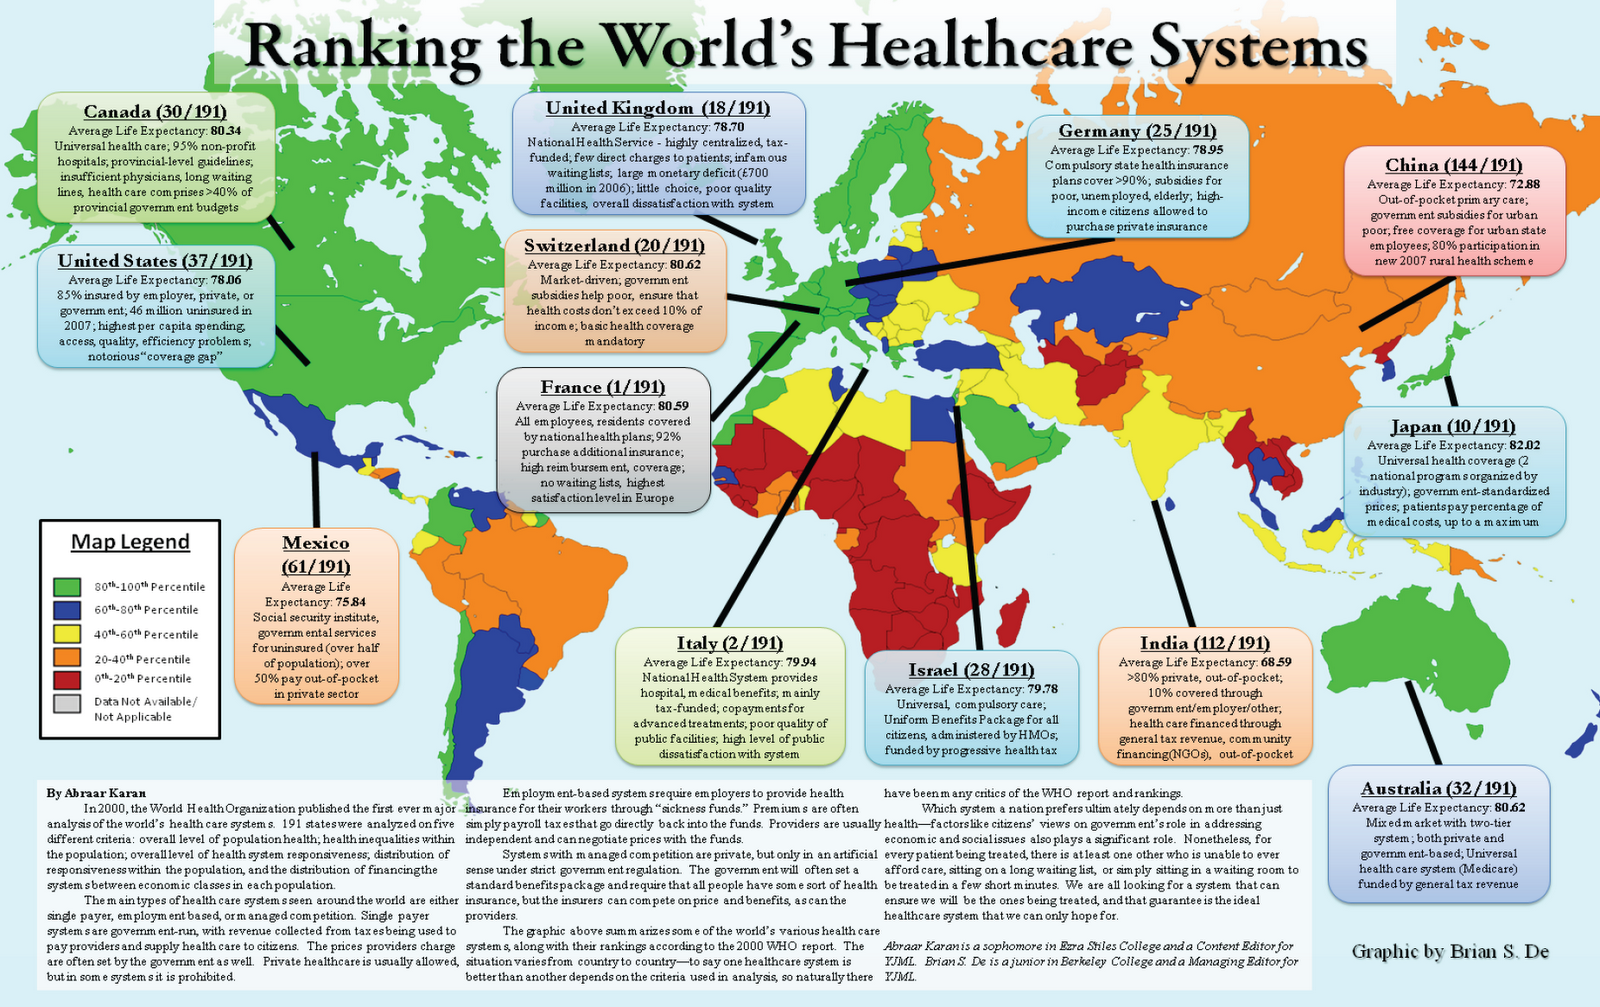 essay united states healthcare The us healthcare system is currently undergoing president obama took the first steps towards implementing a universal health care system in the united states.